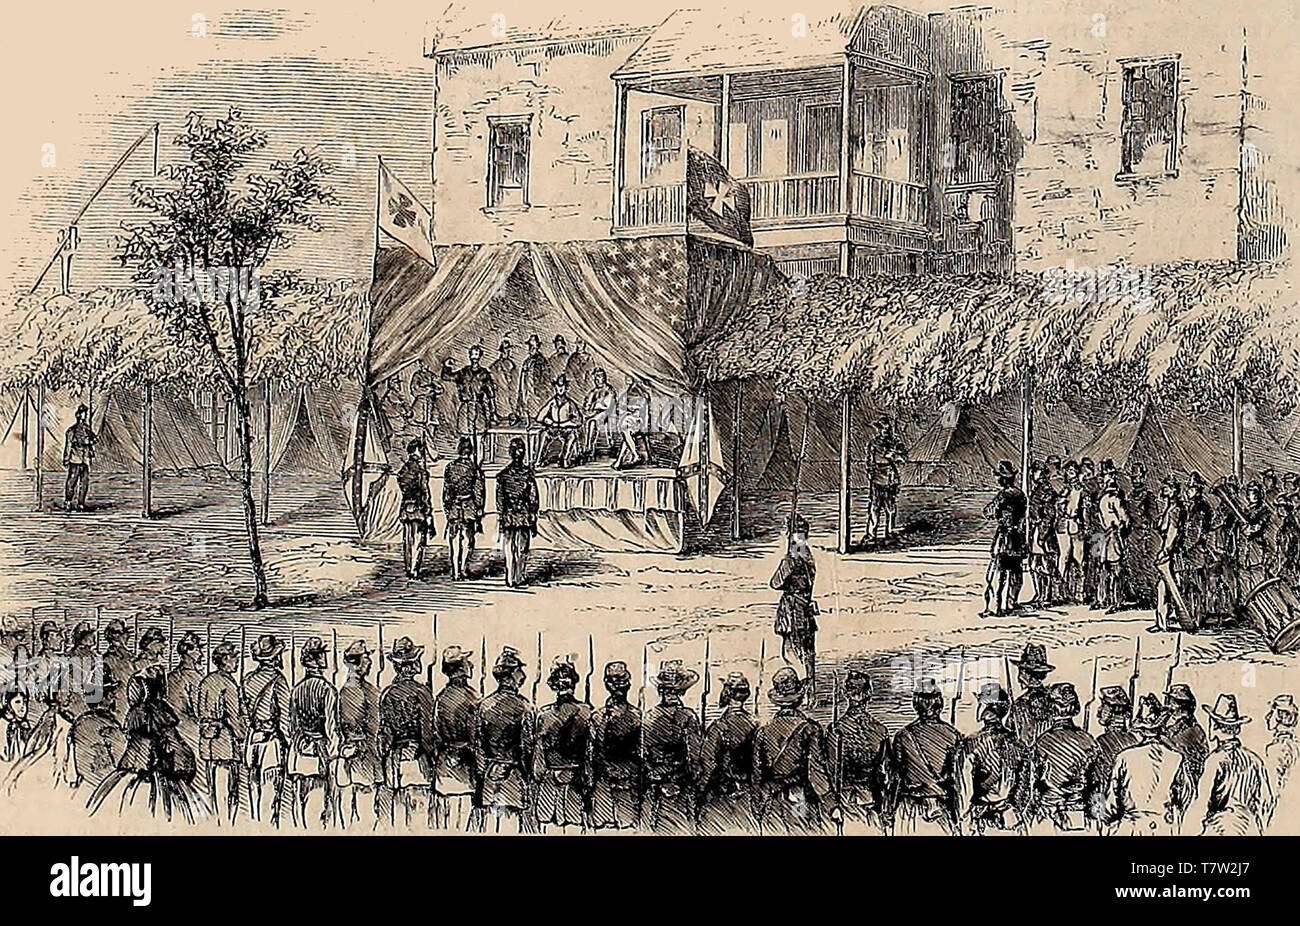 Presentation of Medals to gallant soldiers of the Fifth Army Corps, at General Warren's Headquarters, near Six-Mile House, Virginia, September 13, 1864 - Stock Image